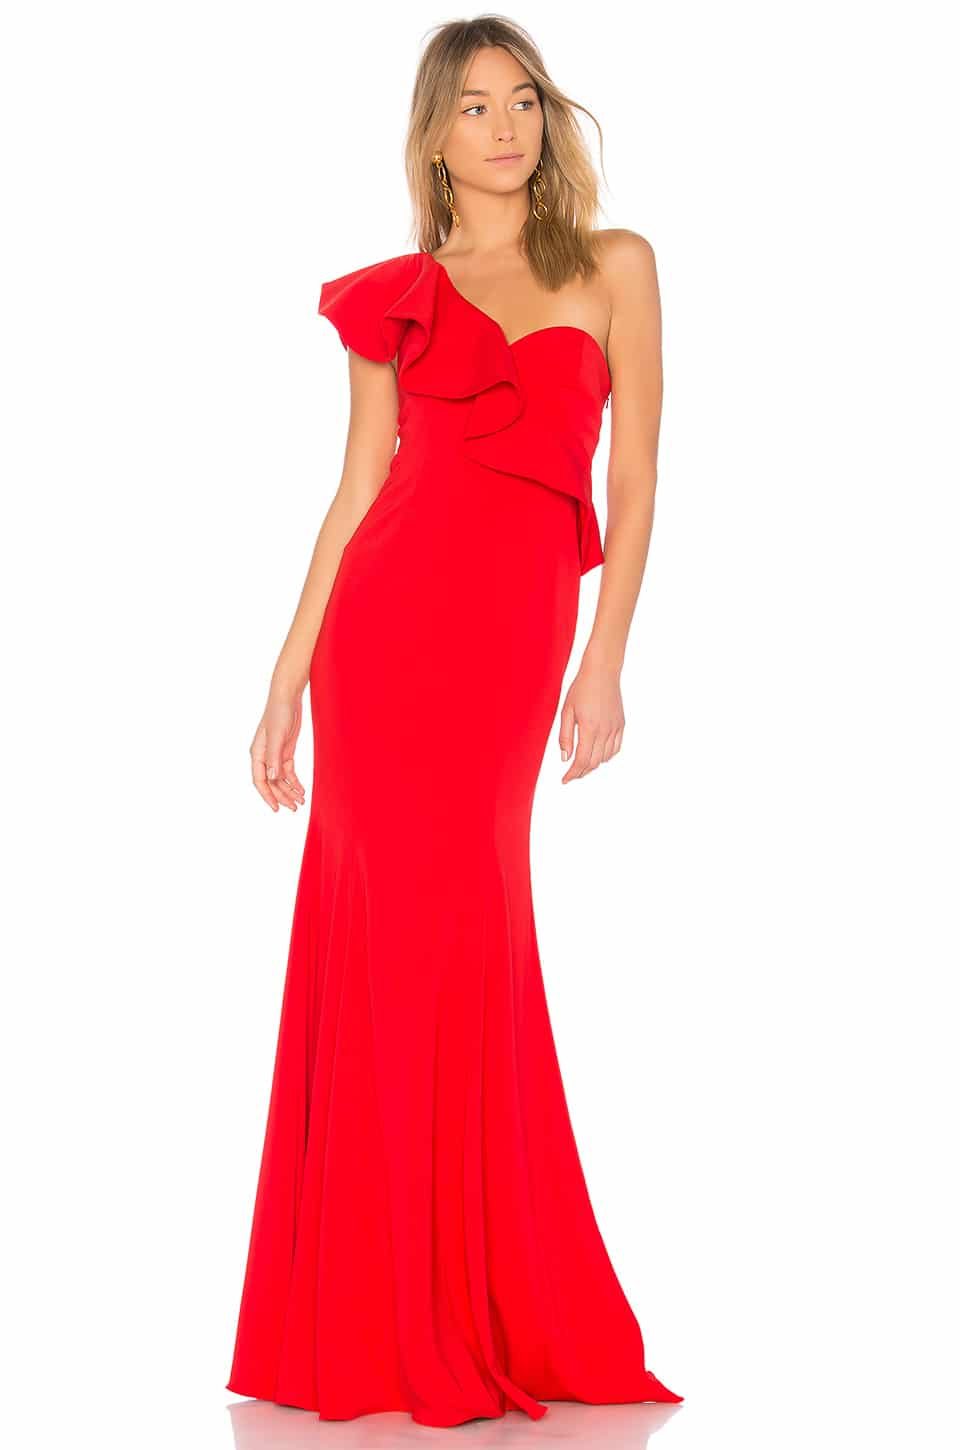 JAY GODFREY X Revolve Bolt Red Gown - We Select Dresses